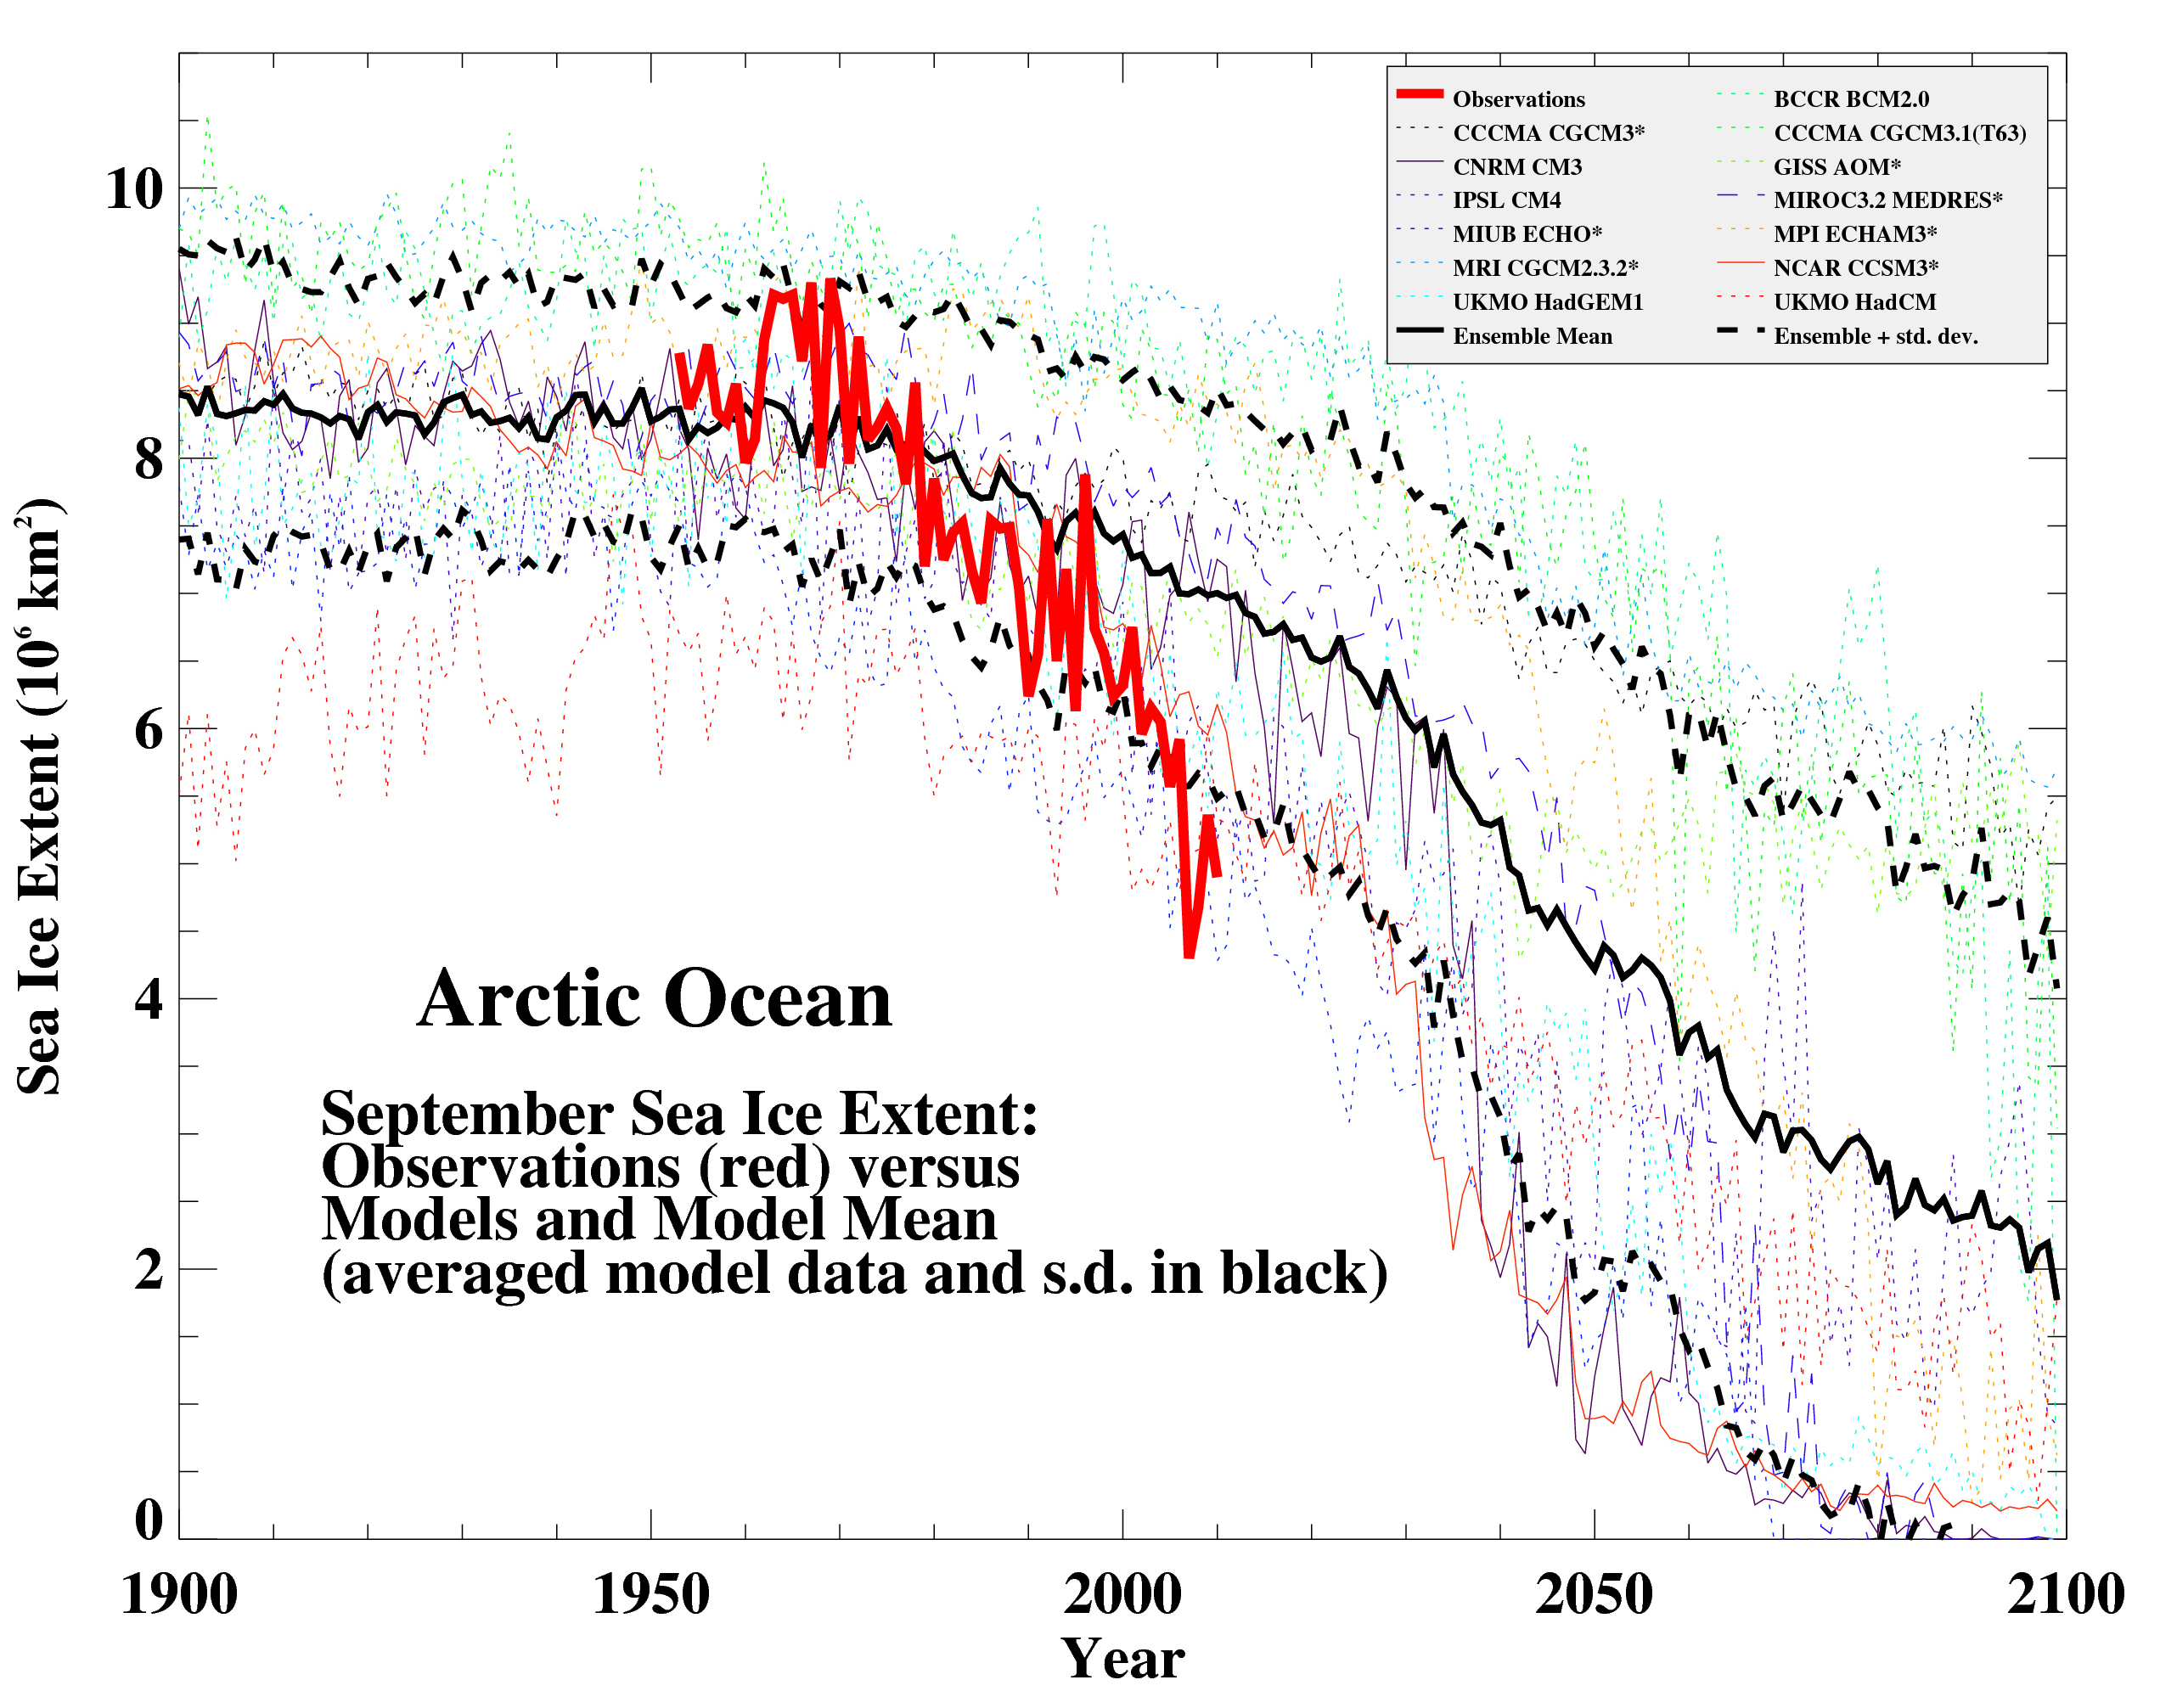 Observed Arctic sea ice extent since 1953 compared to IPCC AR4 models for 1900-2100